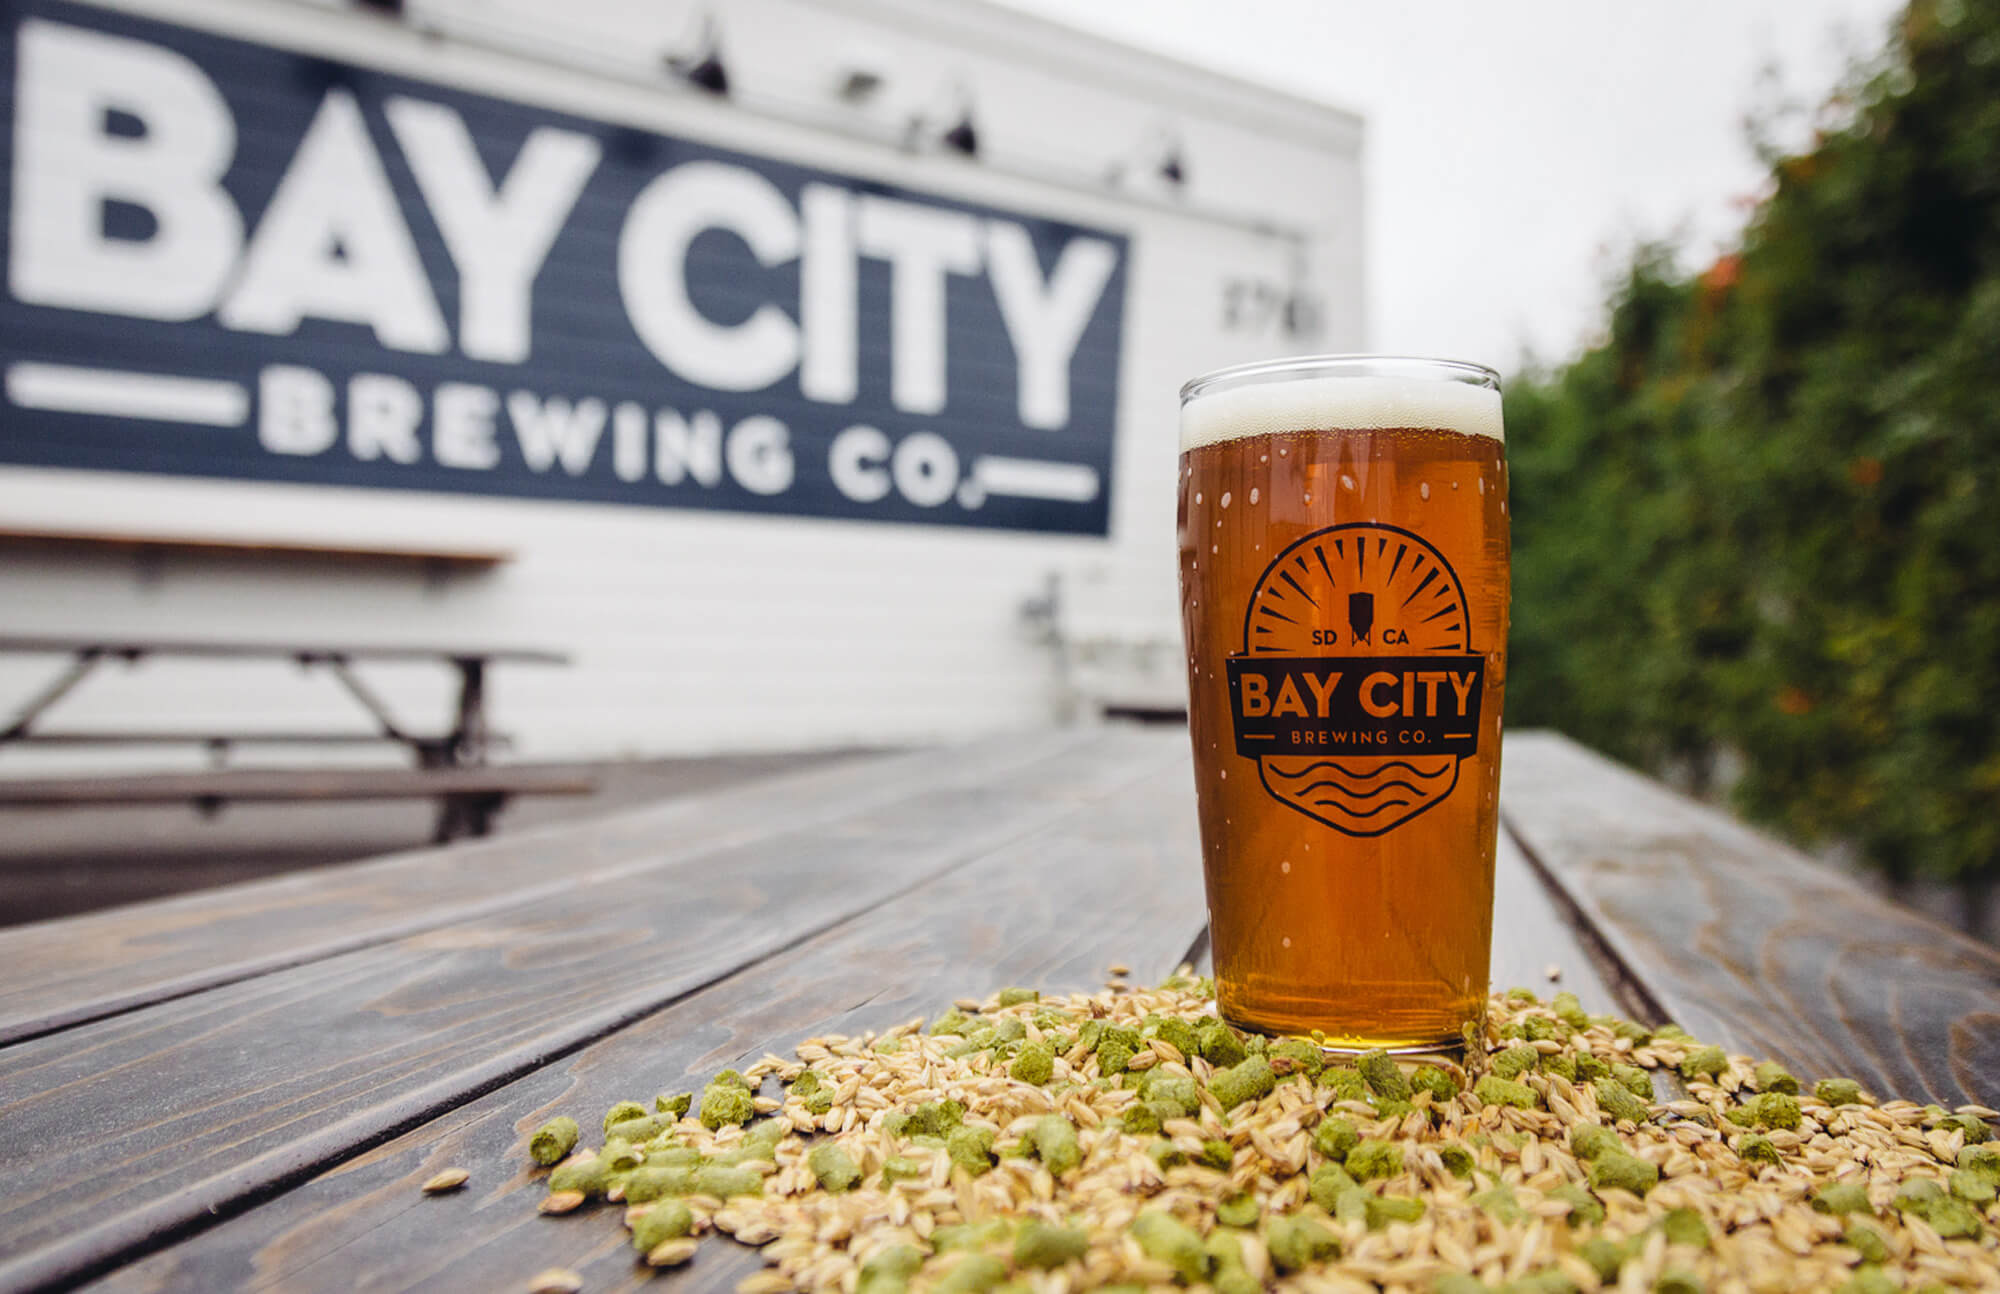 bay-city-brewing-company-sandiego-4